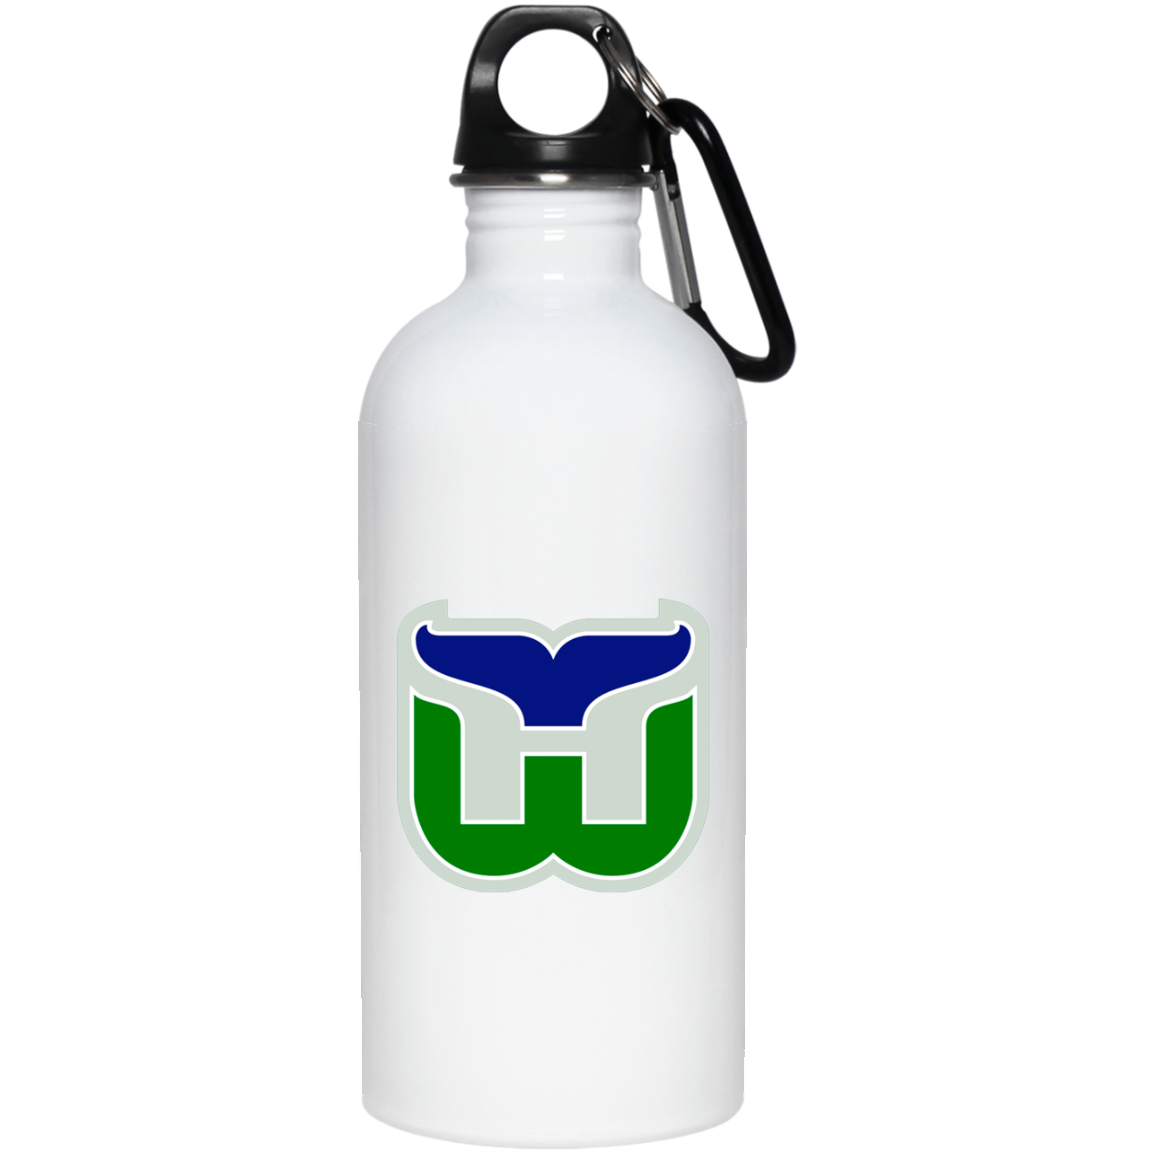 Hartford Whalers Hockey Retro 23663 20 oz. Stainless Steel Water Bottle